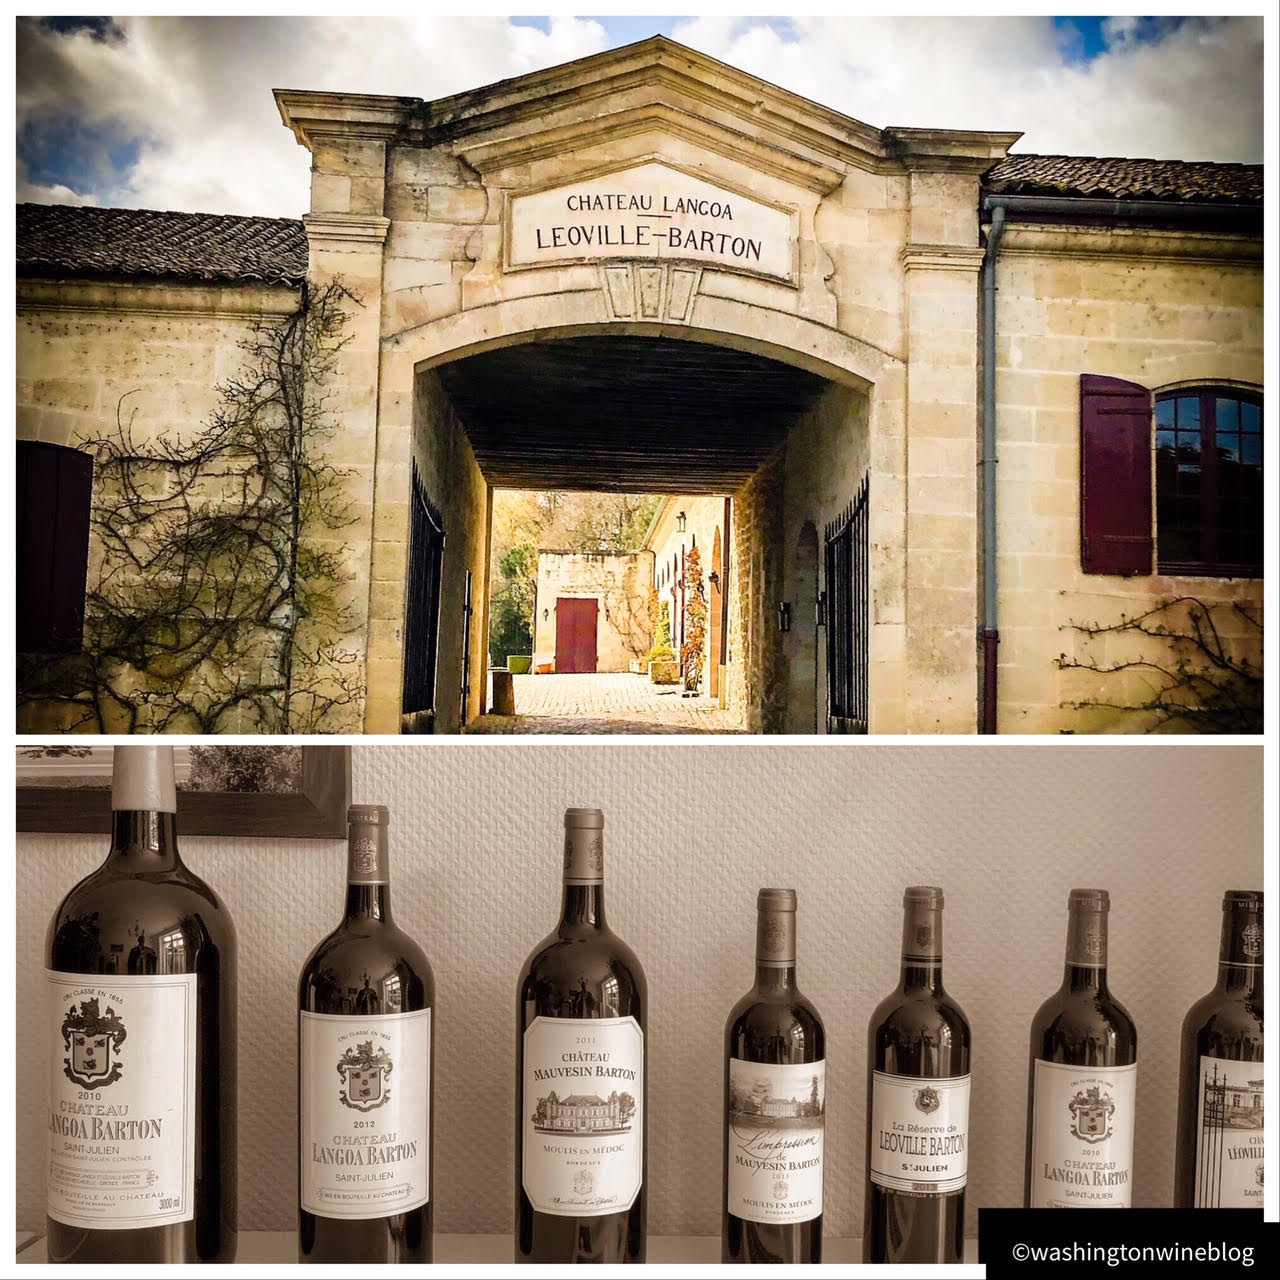 It was a marvelous visit to one of the great second growth estates in Bordeaux, Chateau Léoville-Barton.